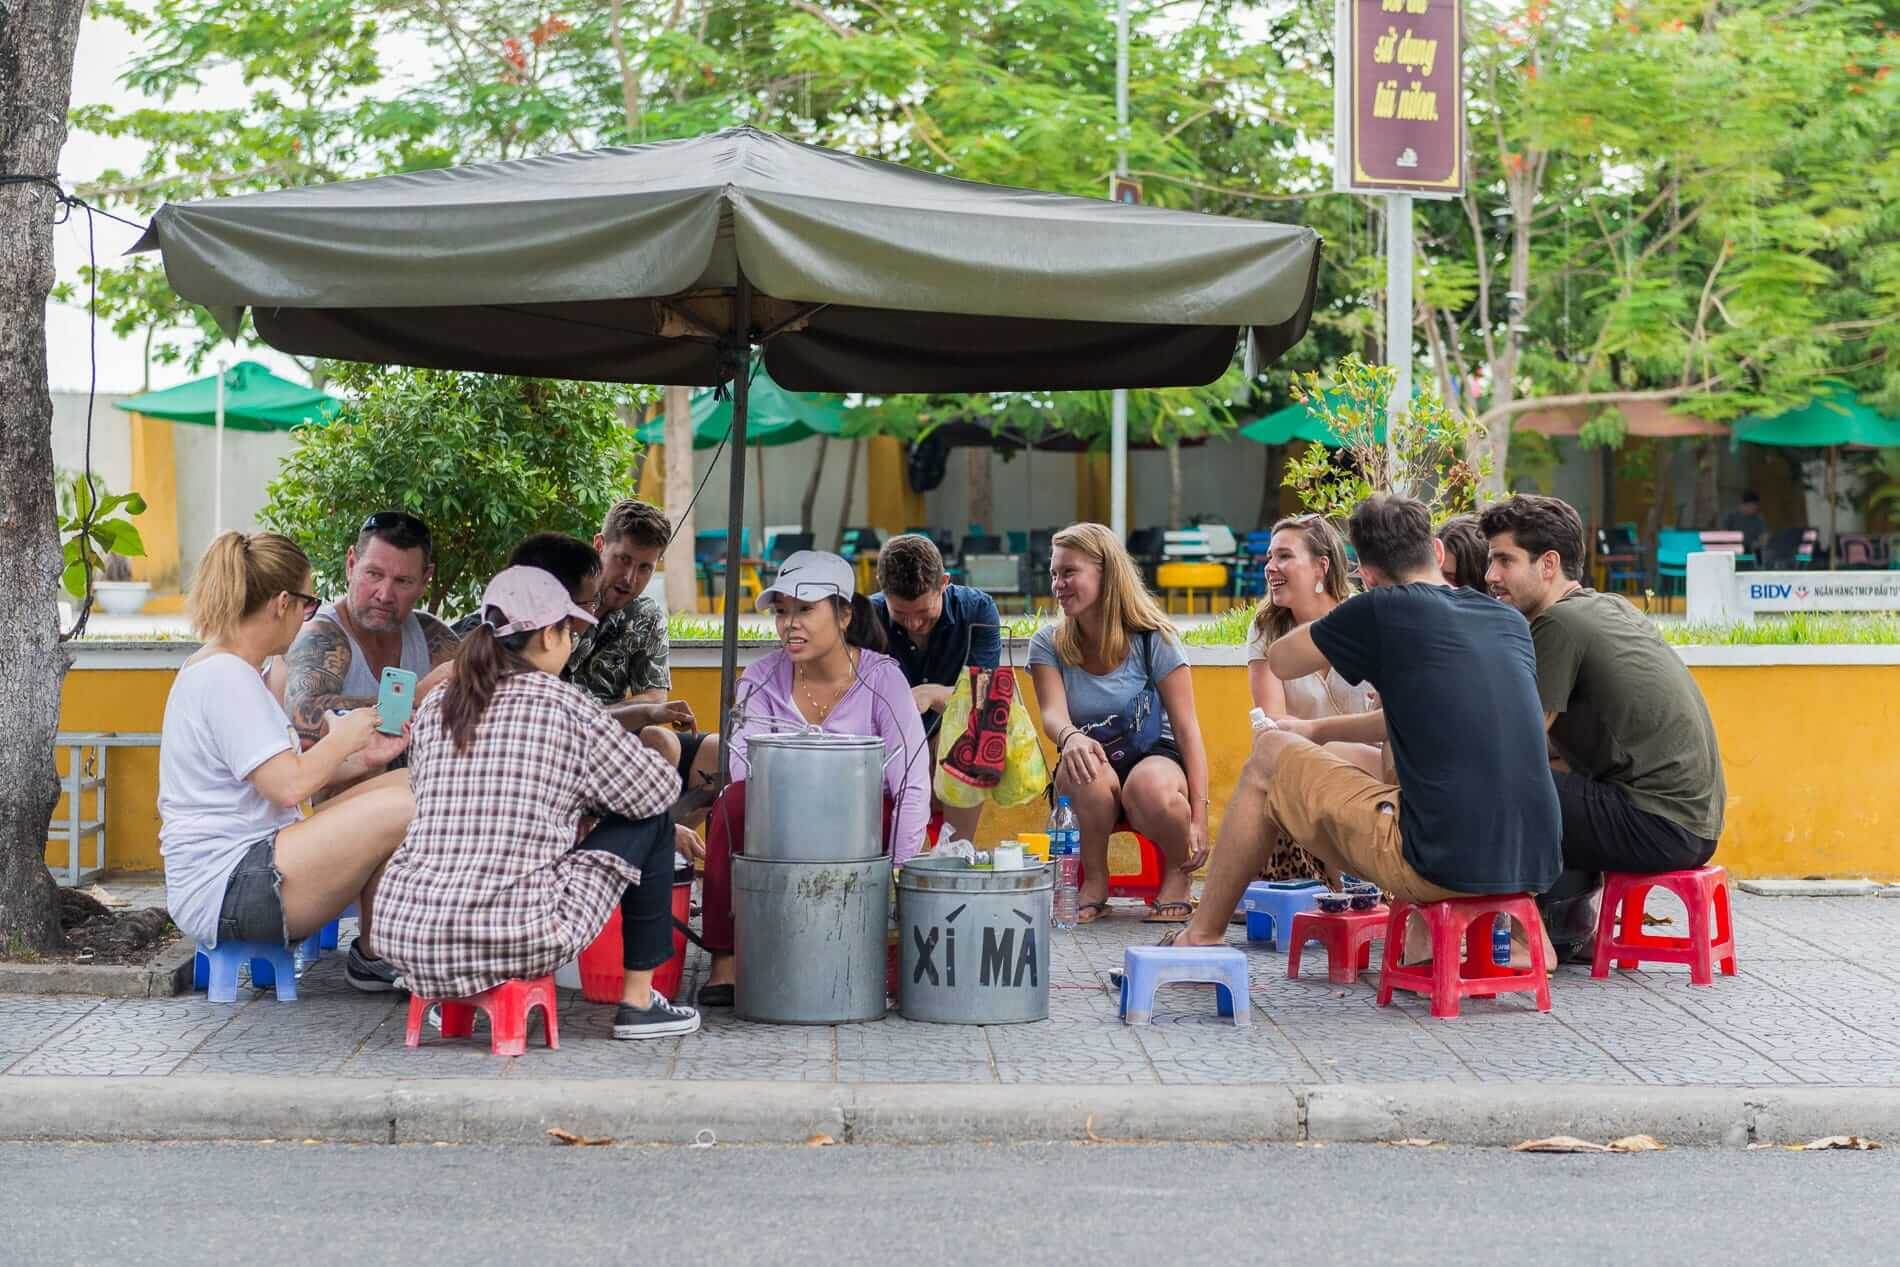 travellers meet at a food stall